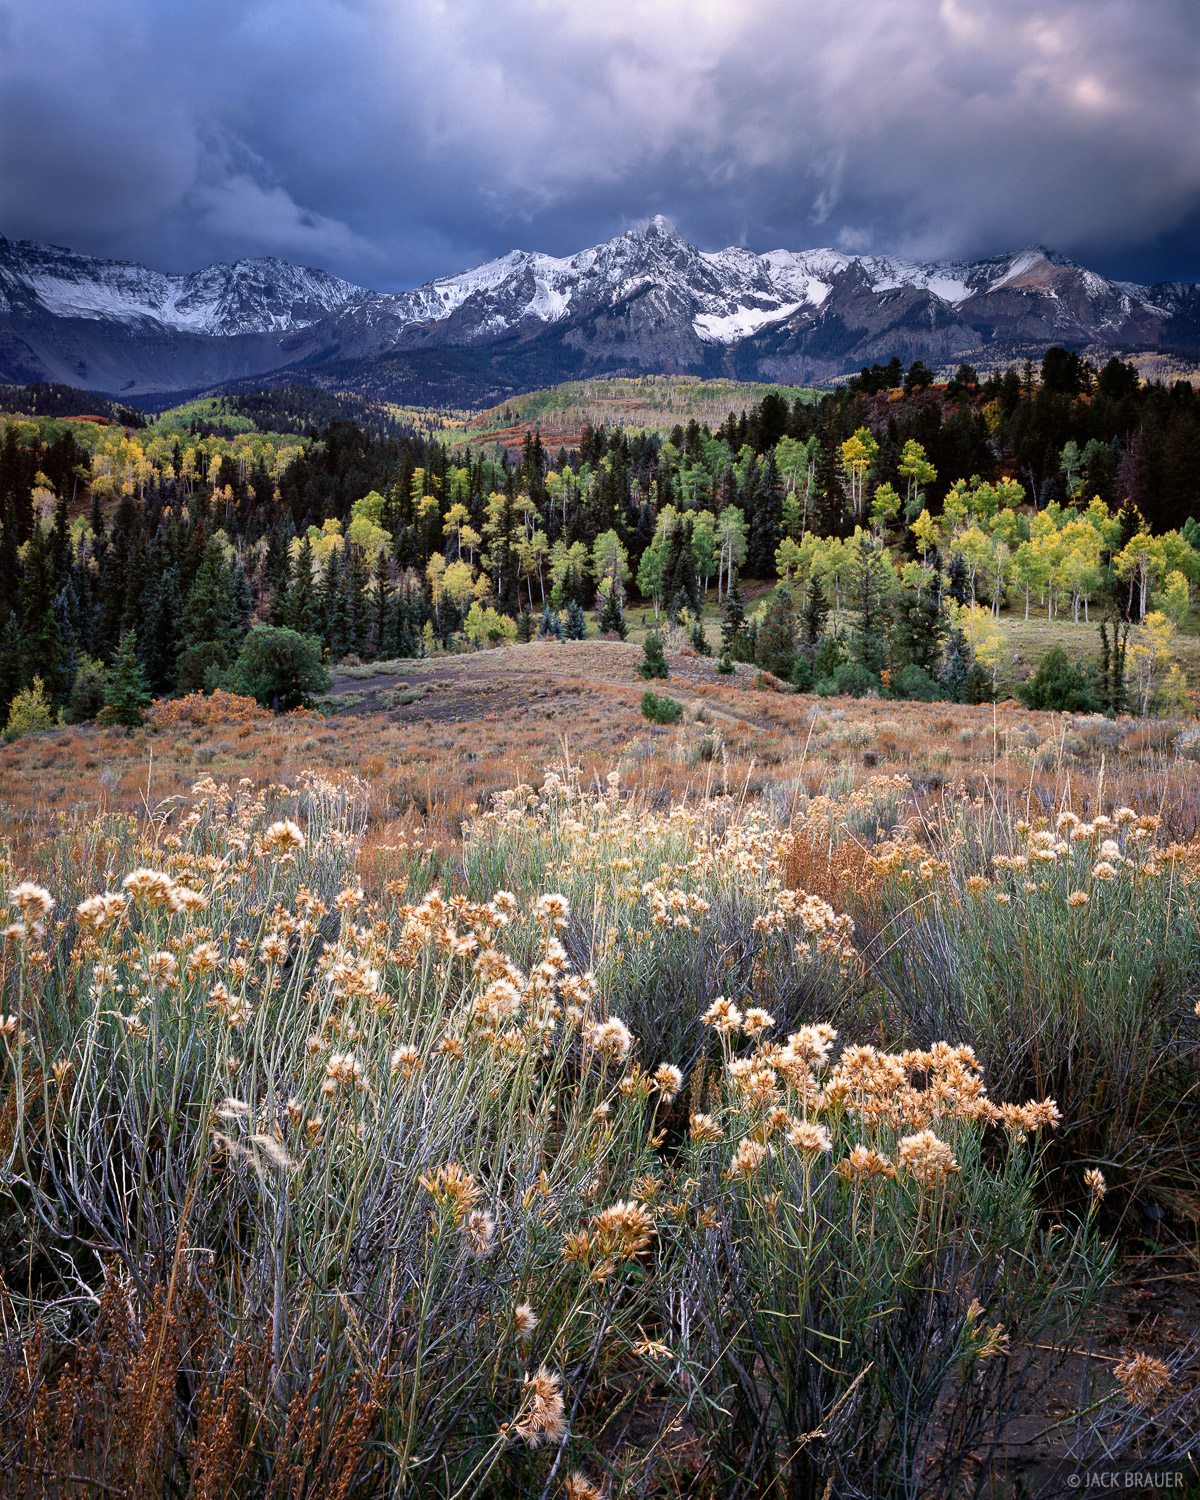 Stormy autumn morning in the Sneffels Range - October.